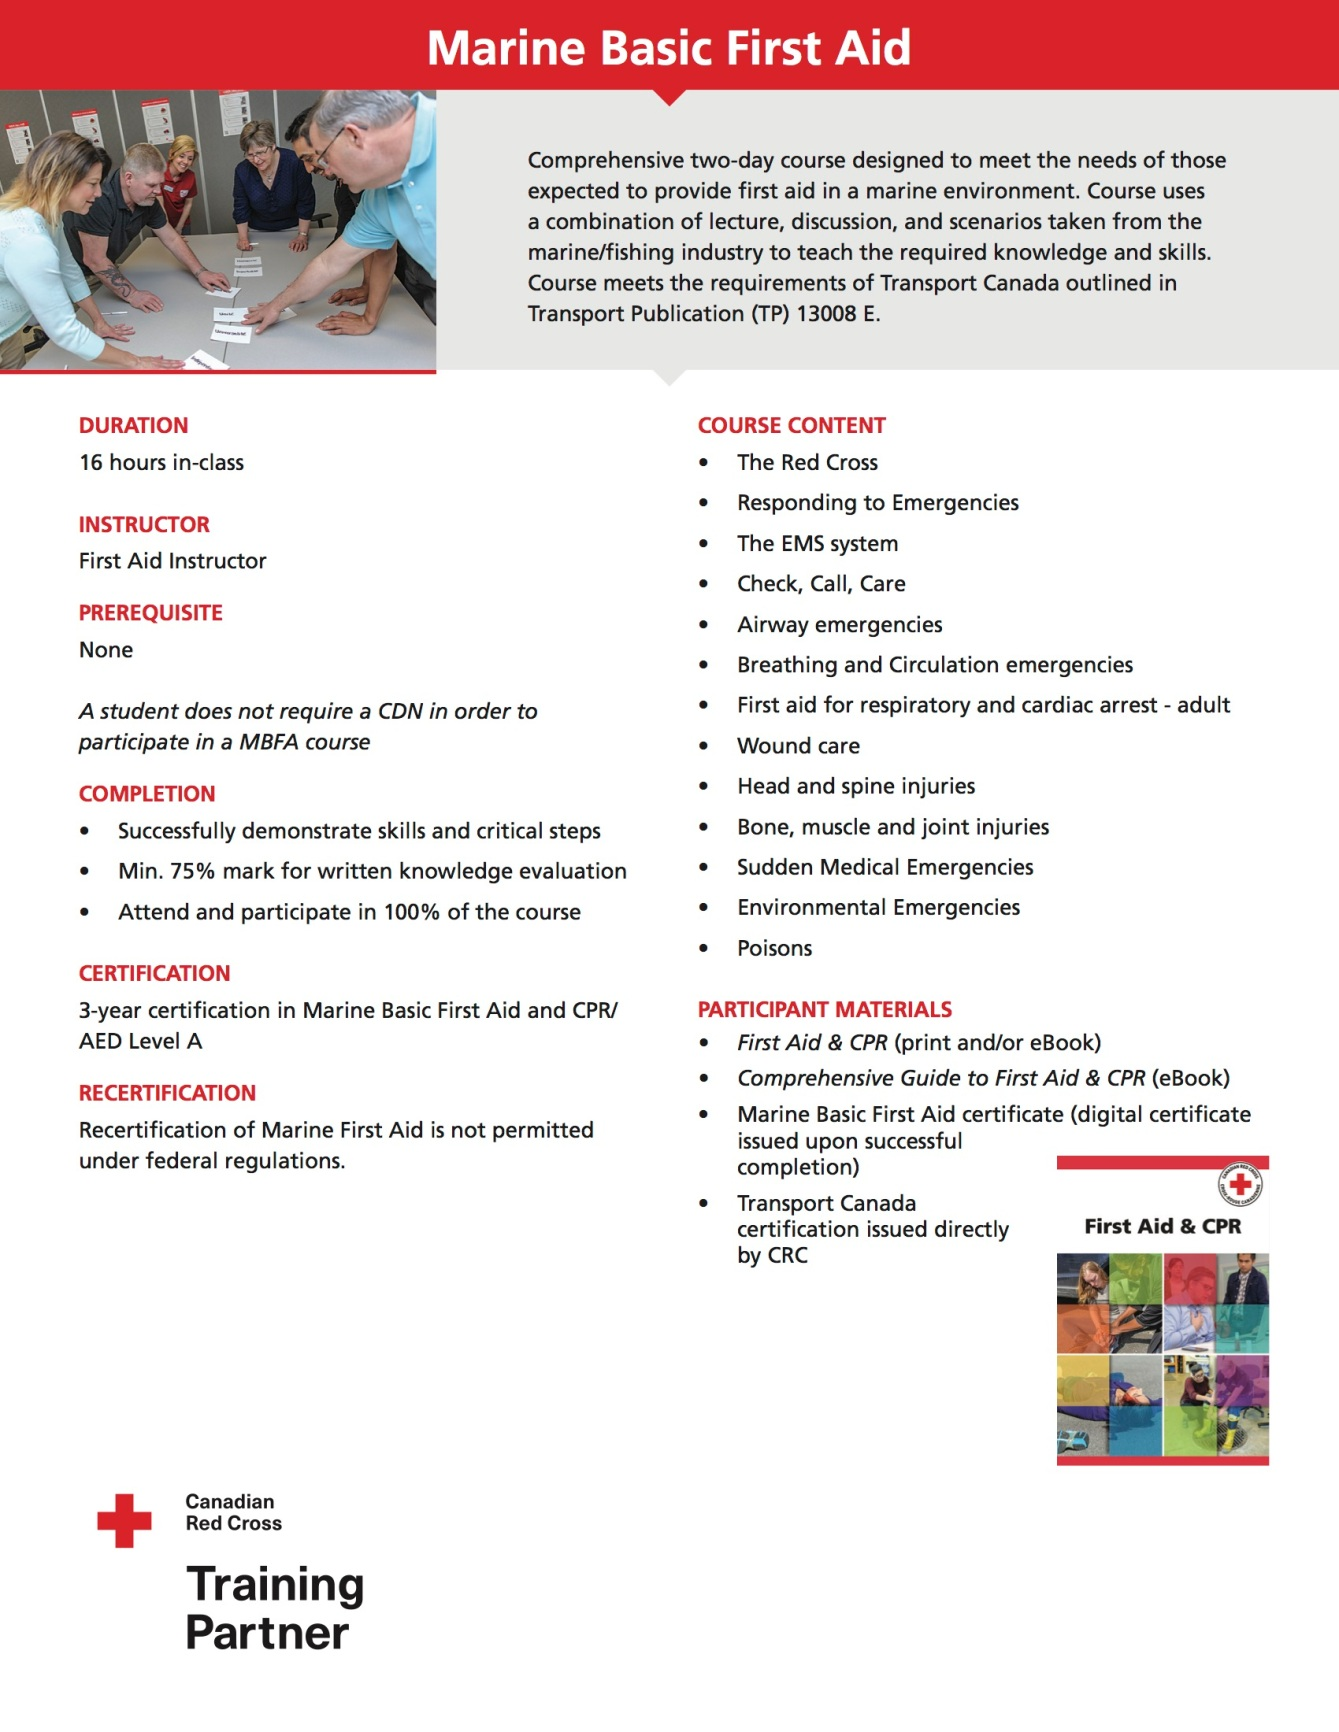 Life Skills First Aid - Marine Basic First Aid Course